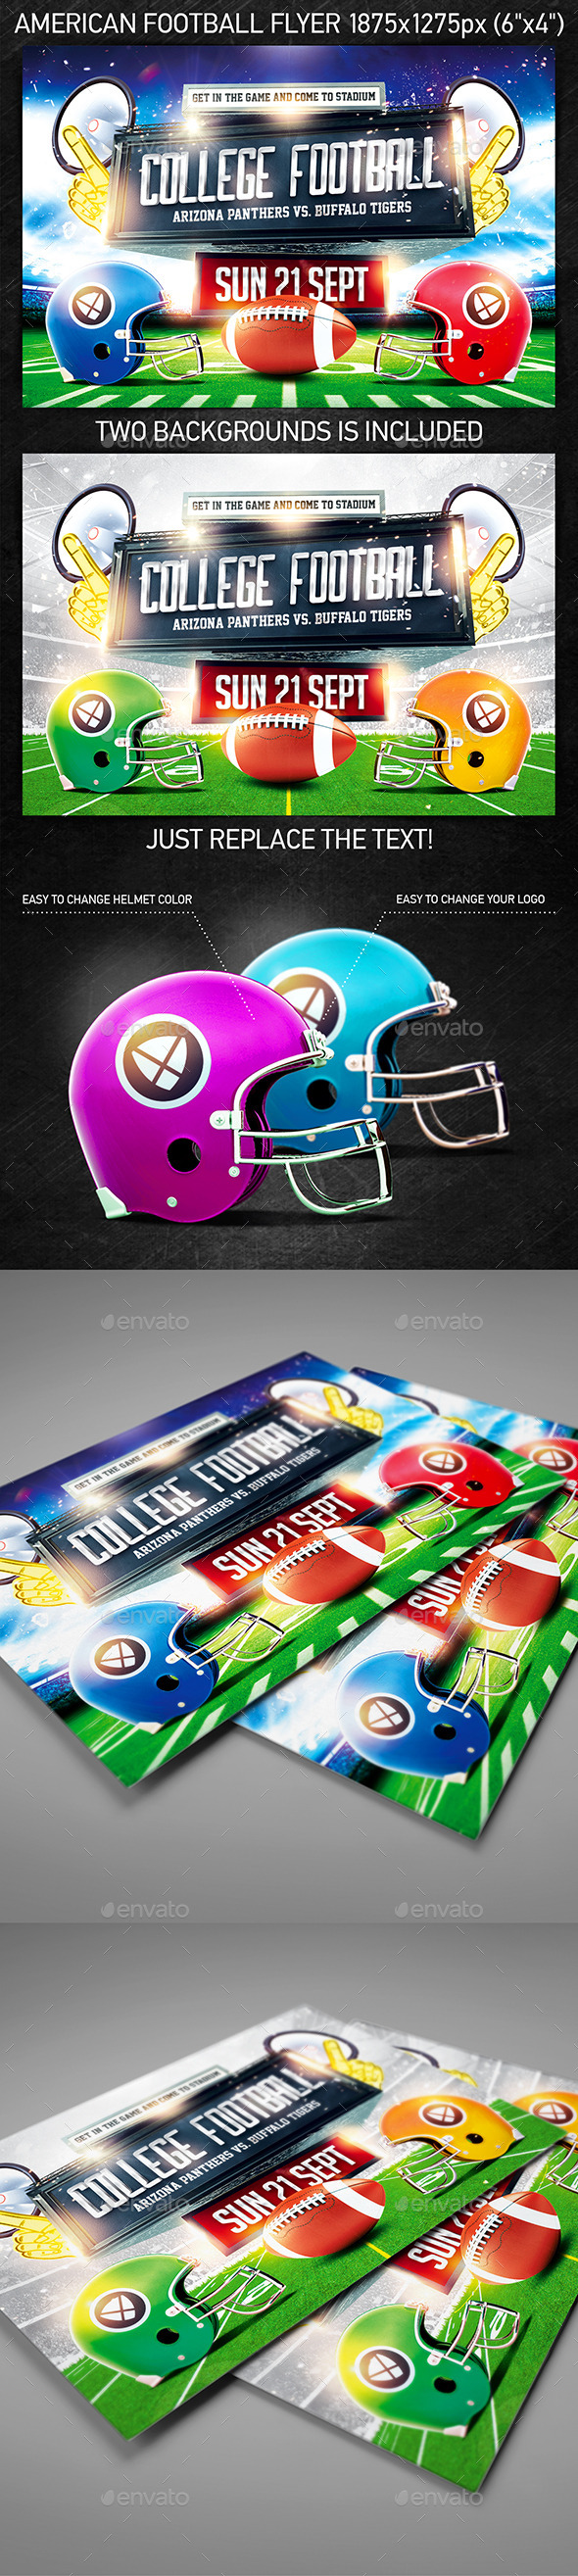 American Football Game Flyer vol.3 - Holidays Events